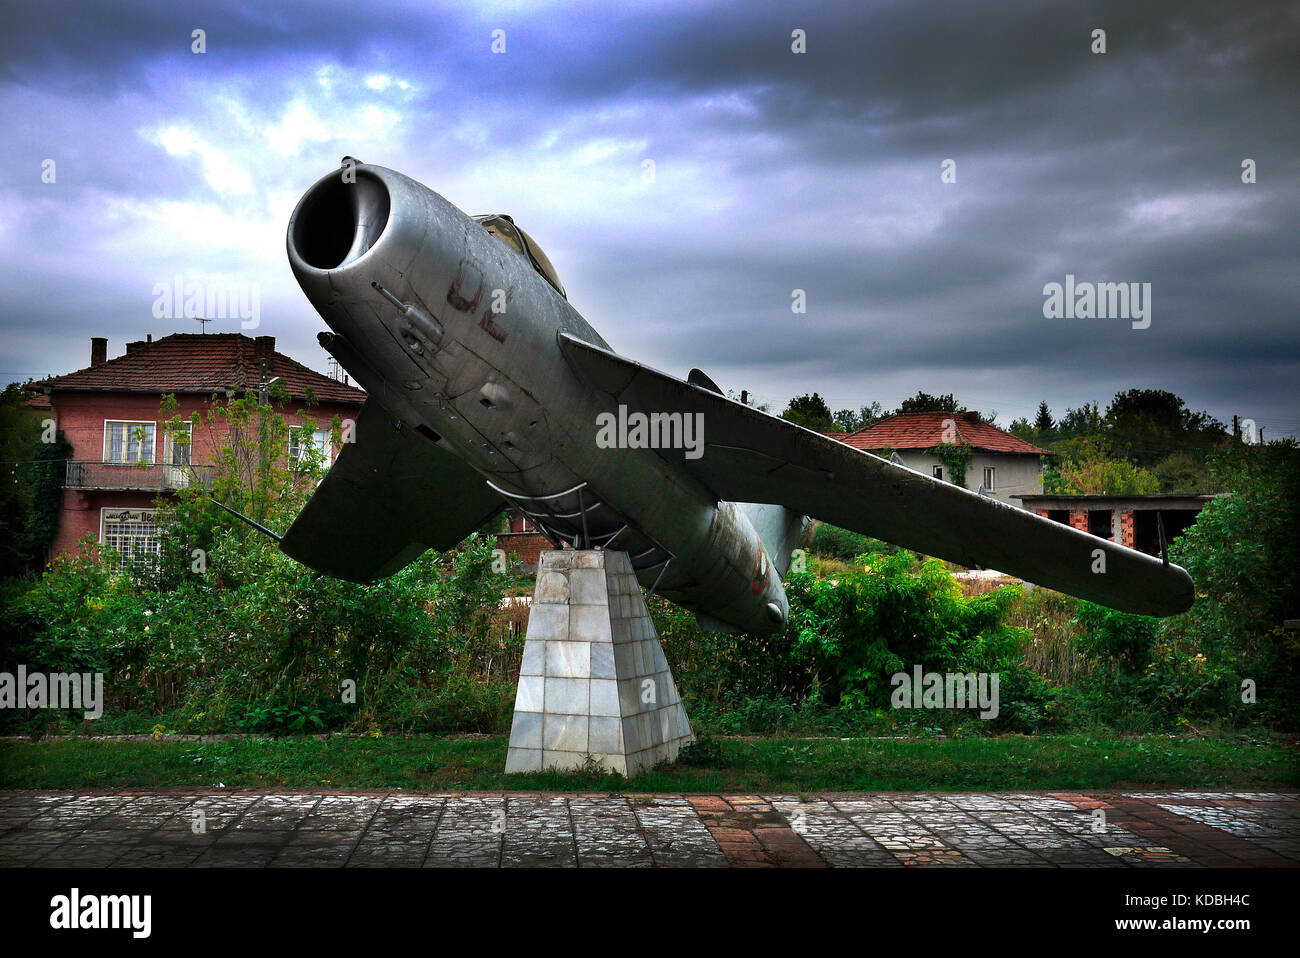 Mig fighter aircraft on display in village of Kamenets in the Pleven province of Bulgaria. - Stock Image